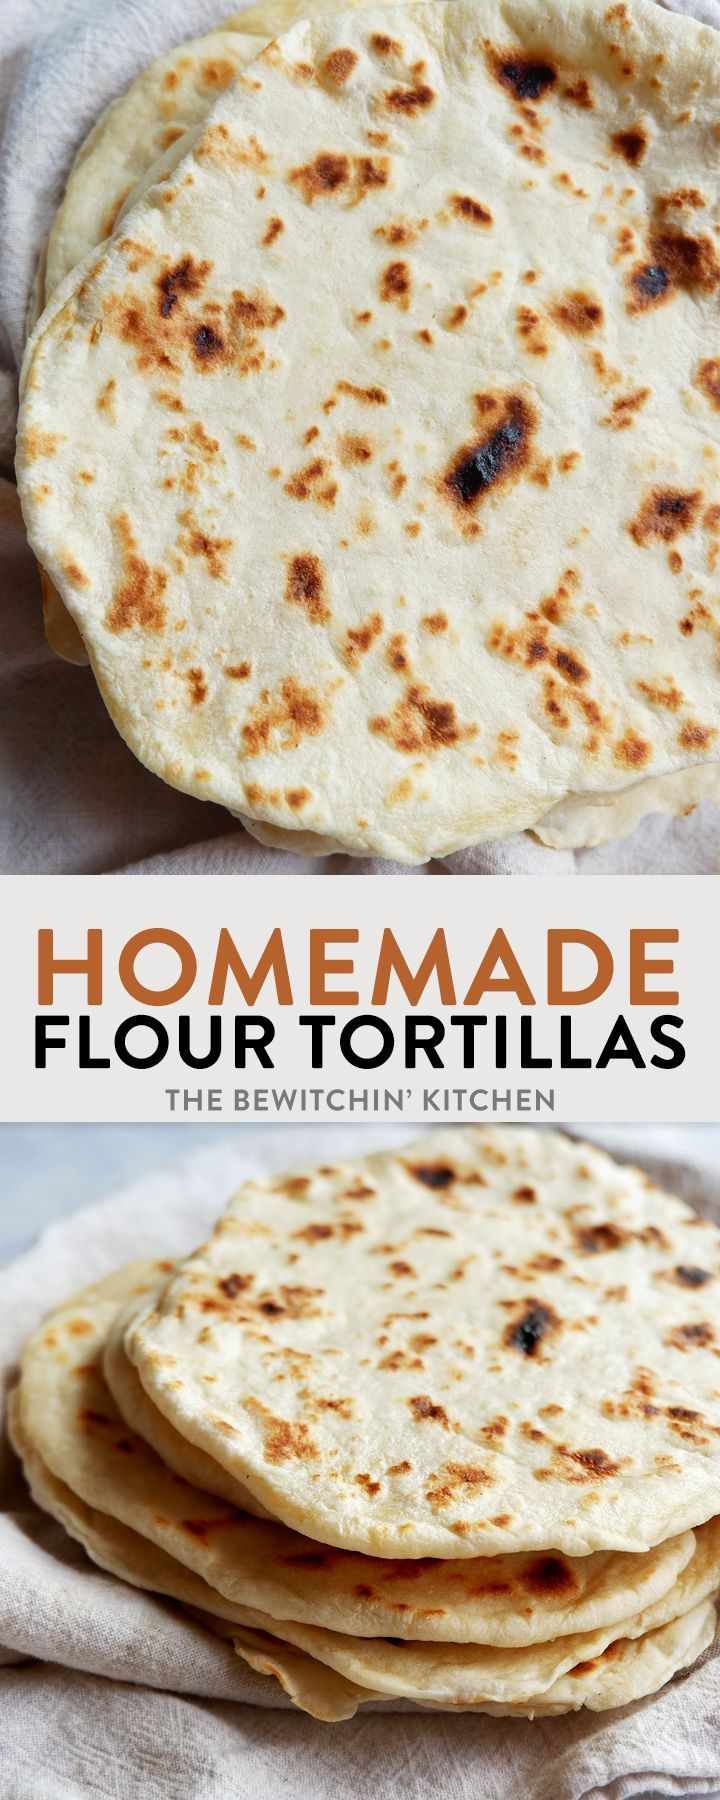 How to make flour tortillas. Homemade tortillas are easy to make, you only need four ingredients! A simple tortilla recipe for delicious southwestern and Mexican nights.